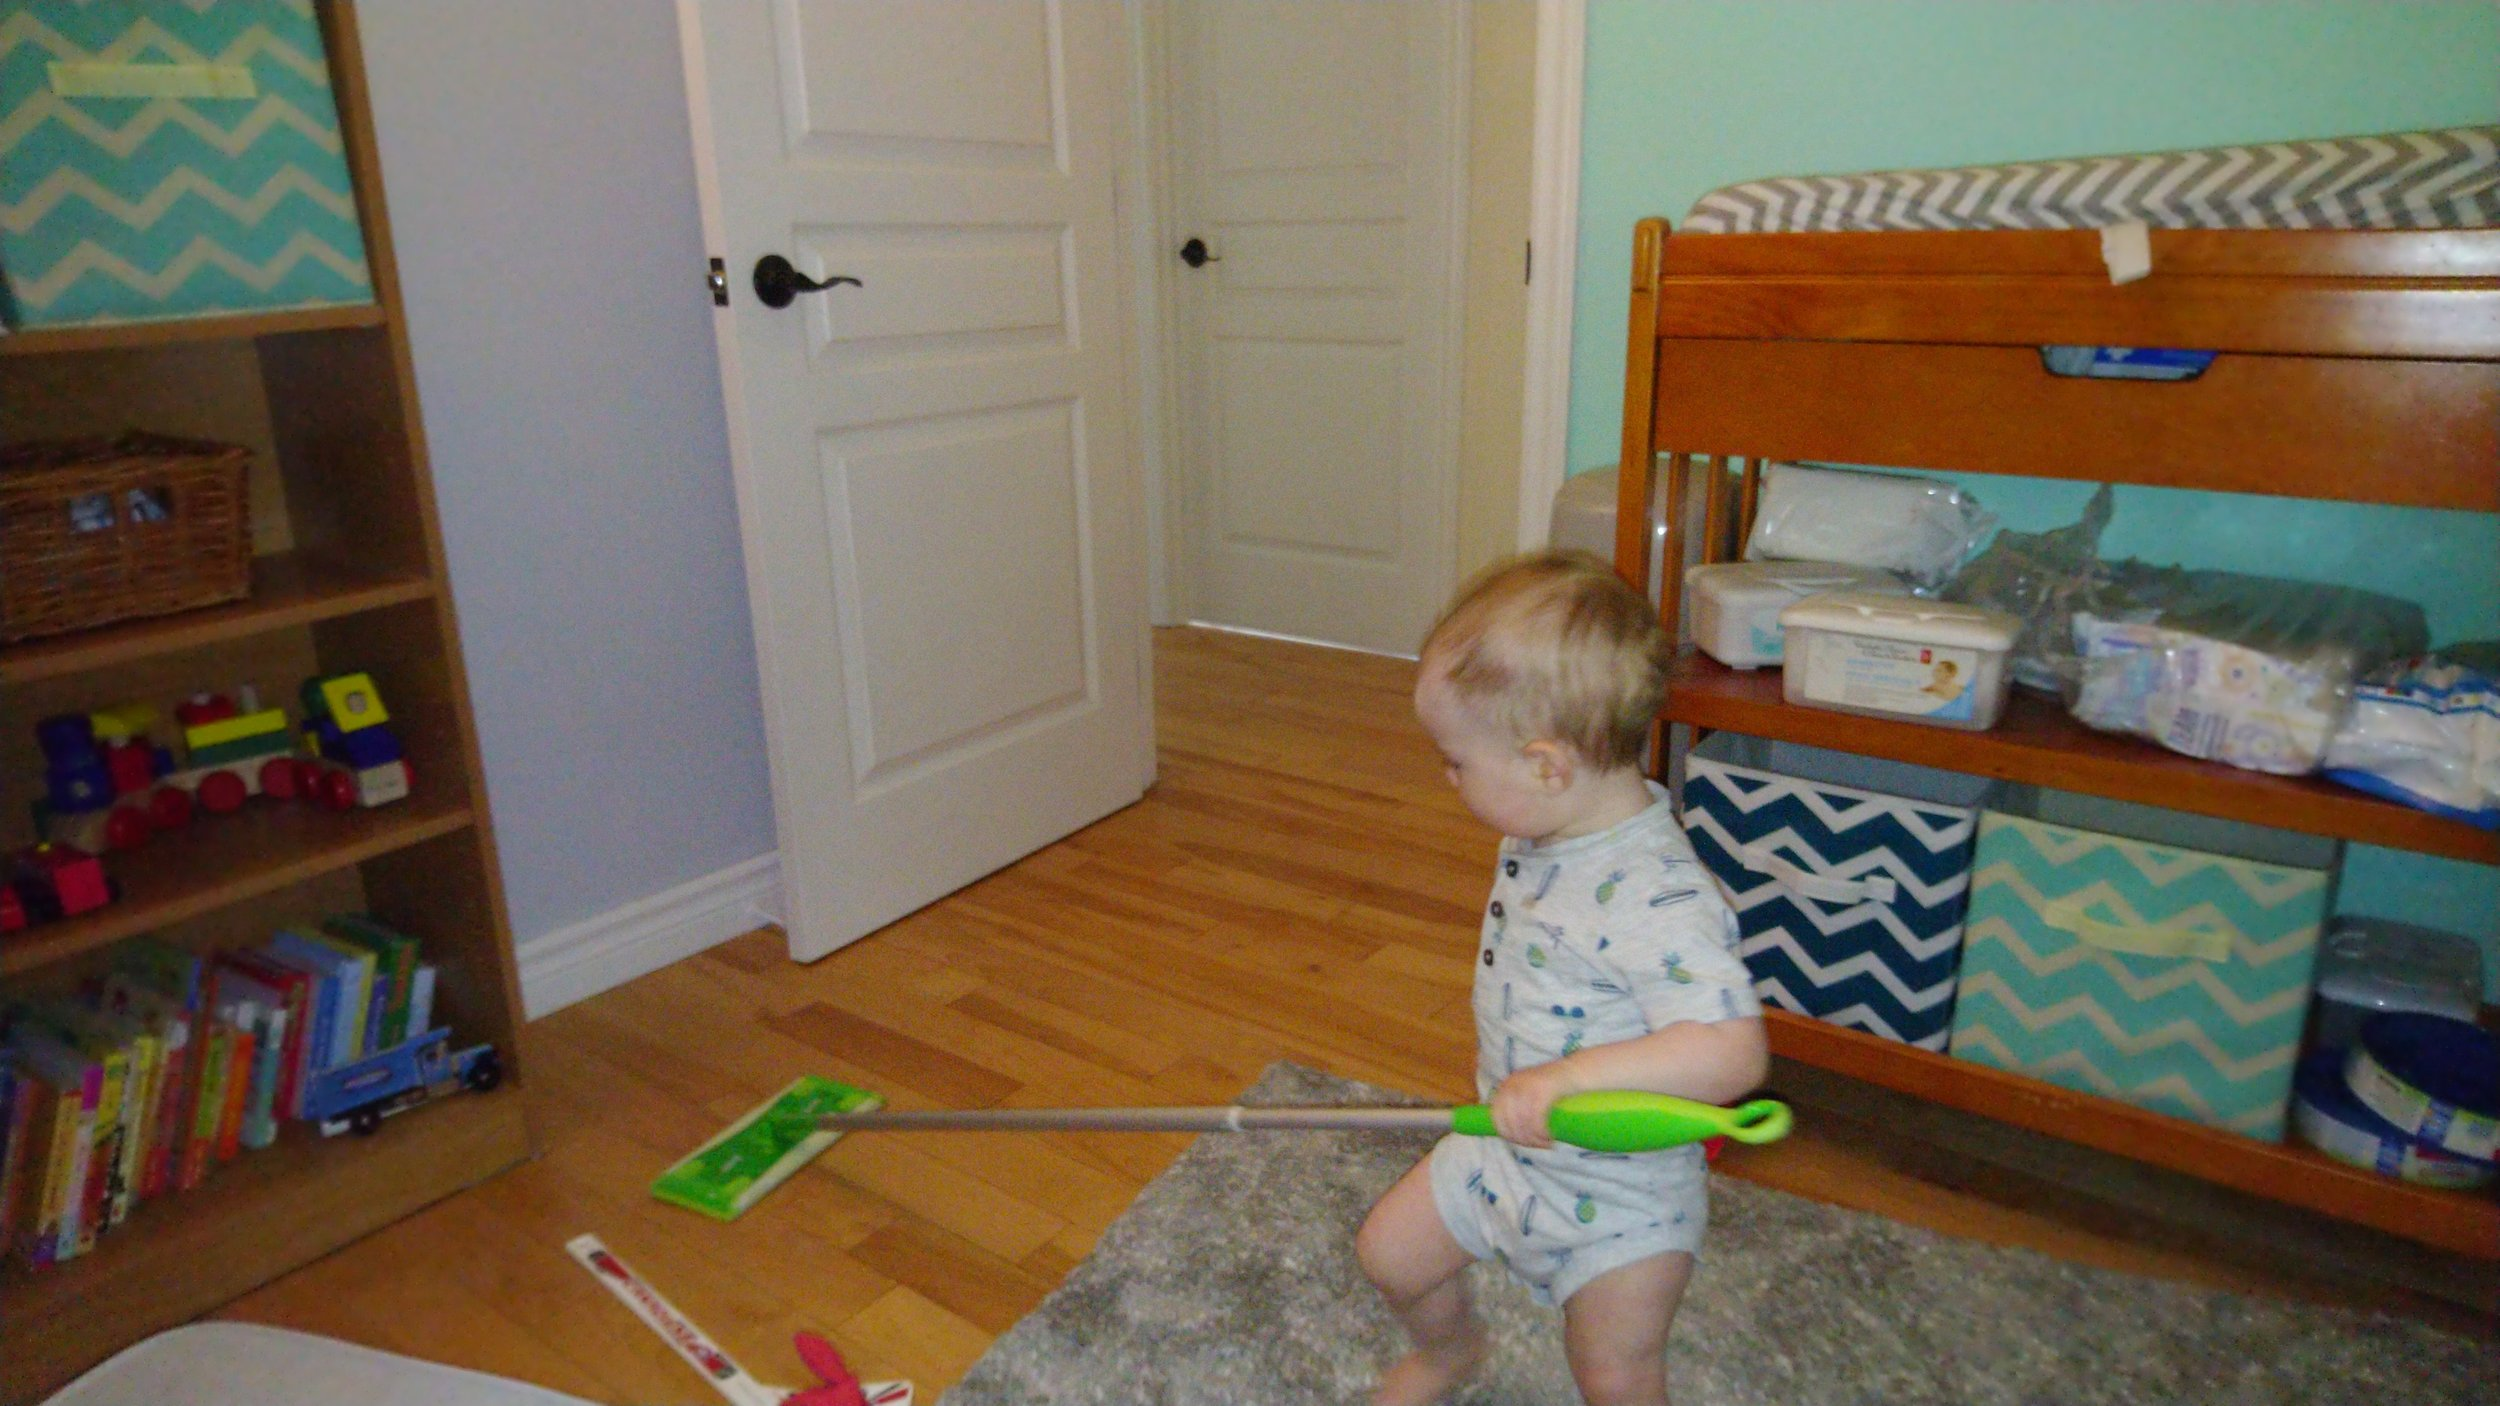 Cleaning his room